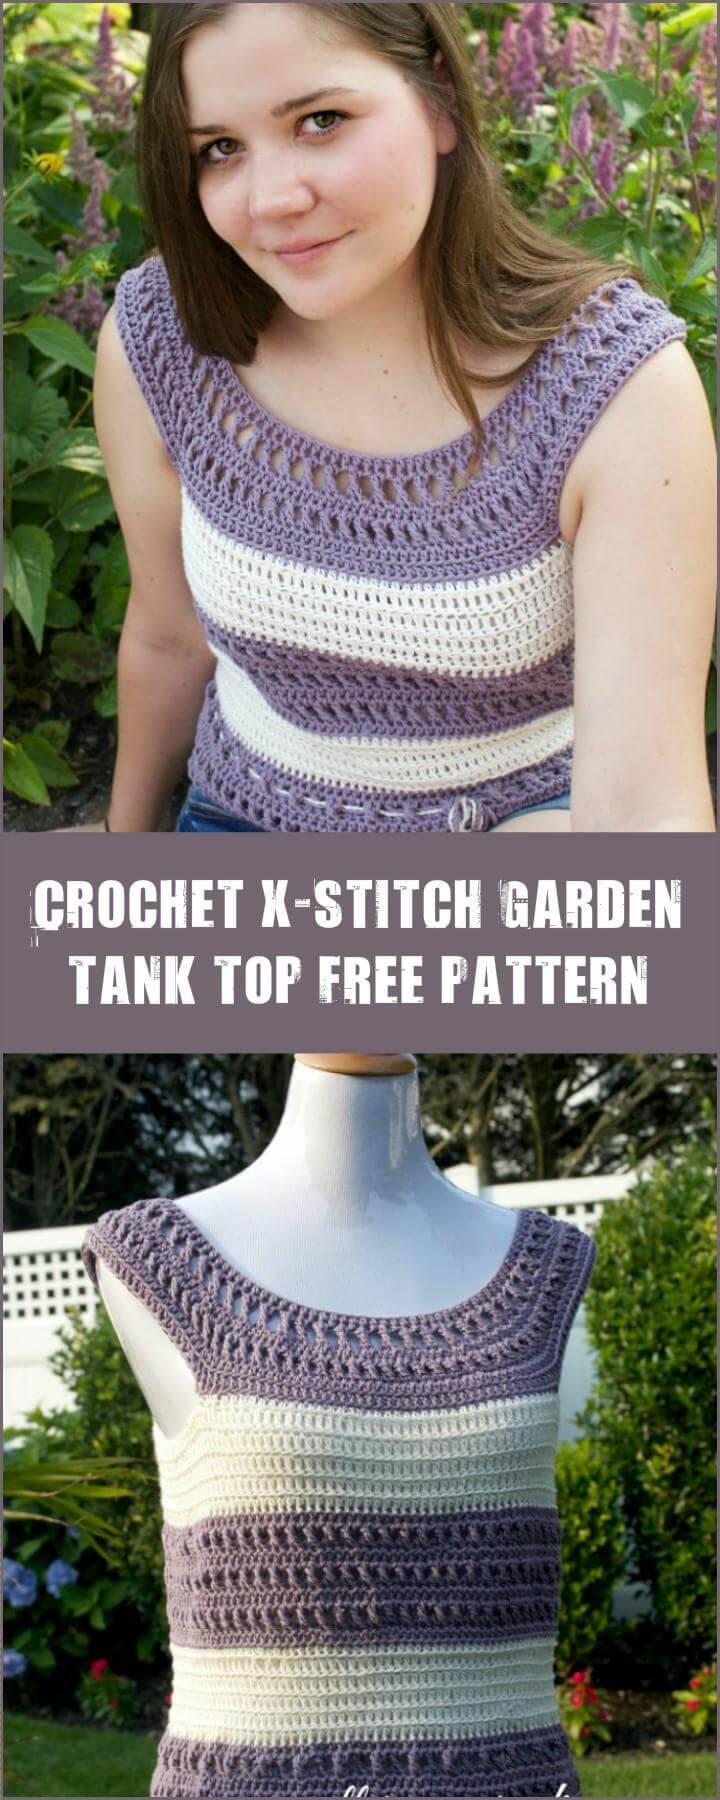 Crochet X-Stitch Garden Tank Top Free Pattern